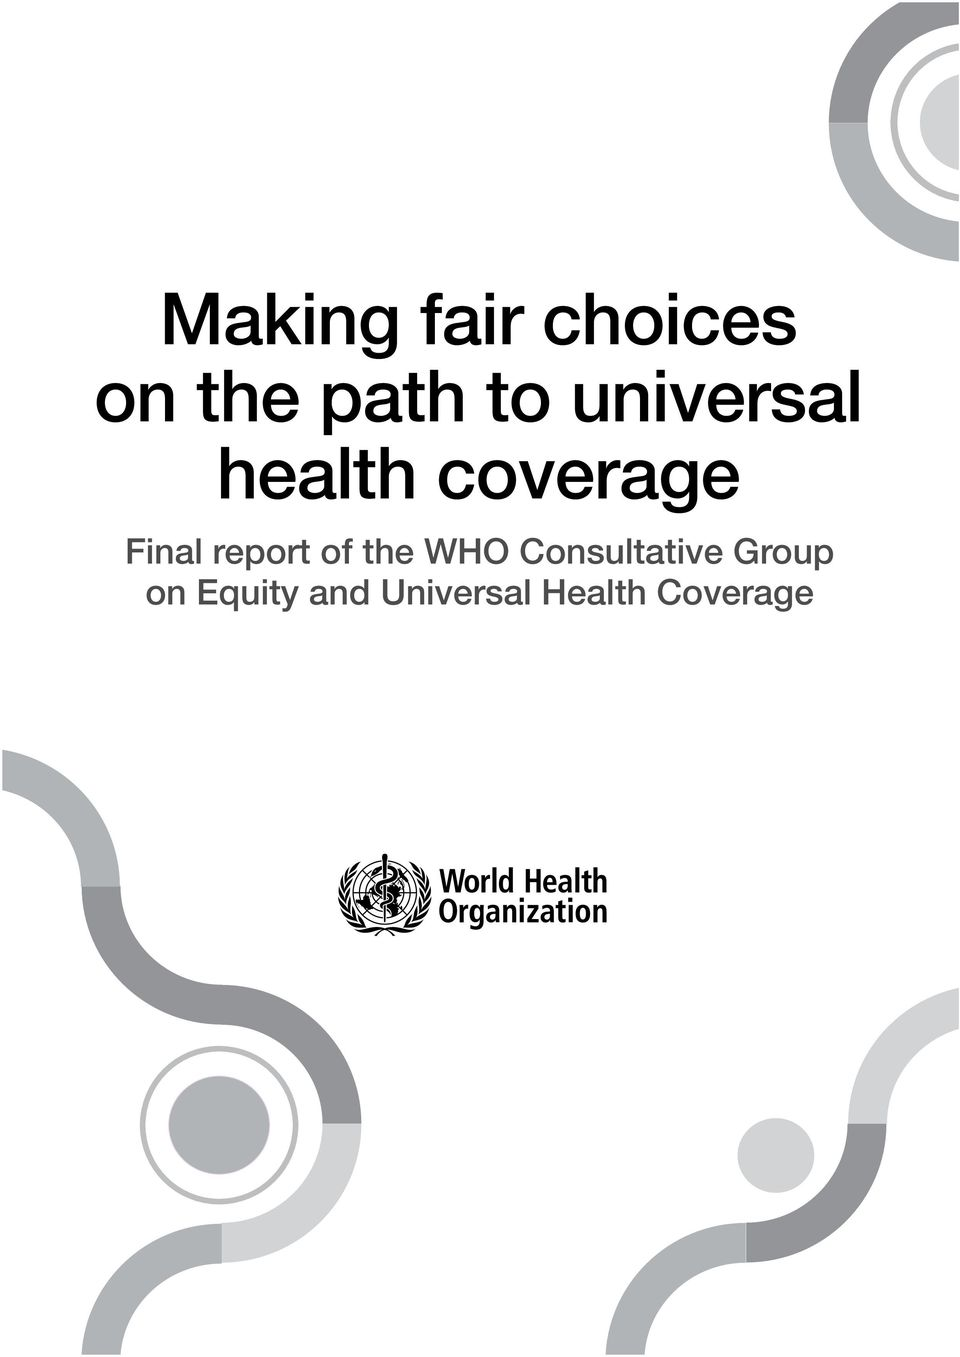 report of the WHO Consultative